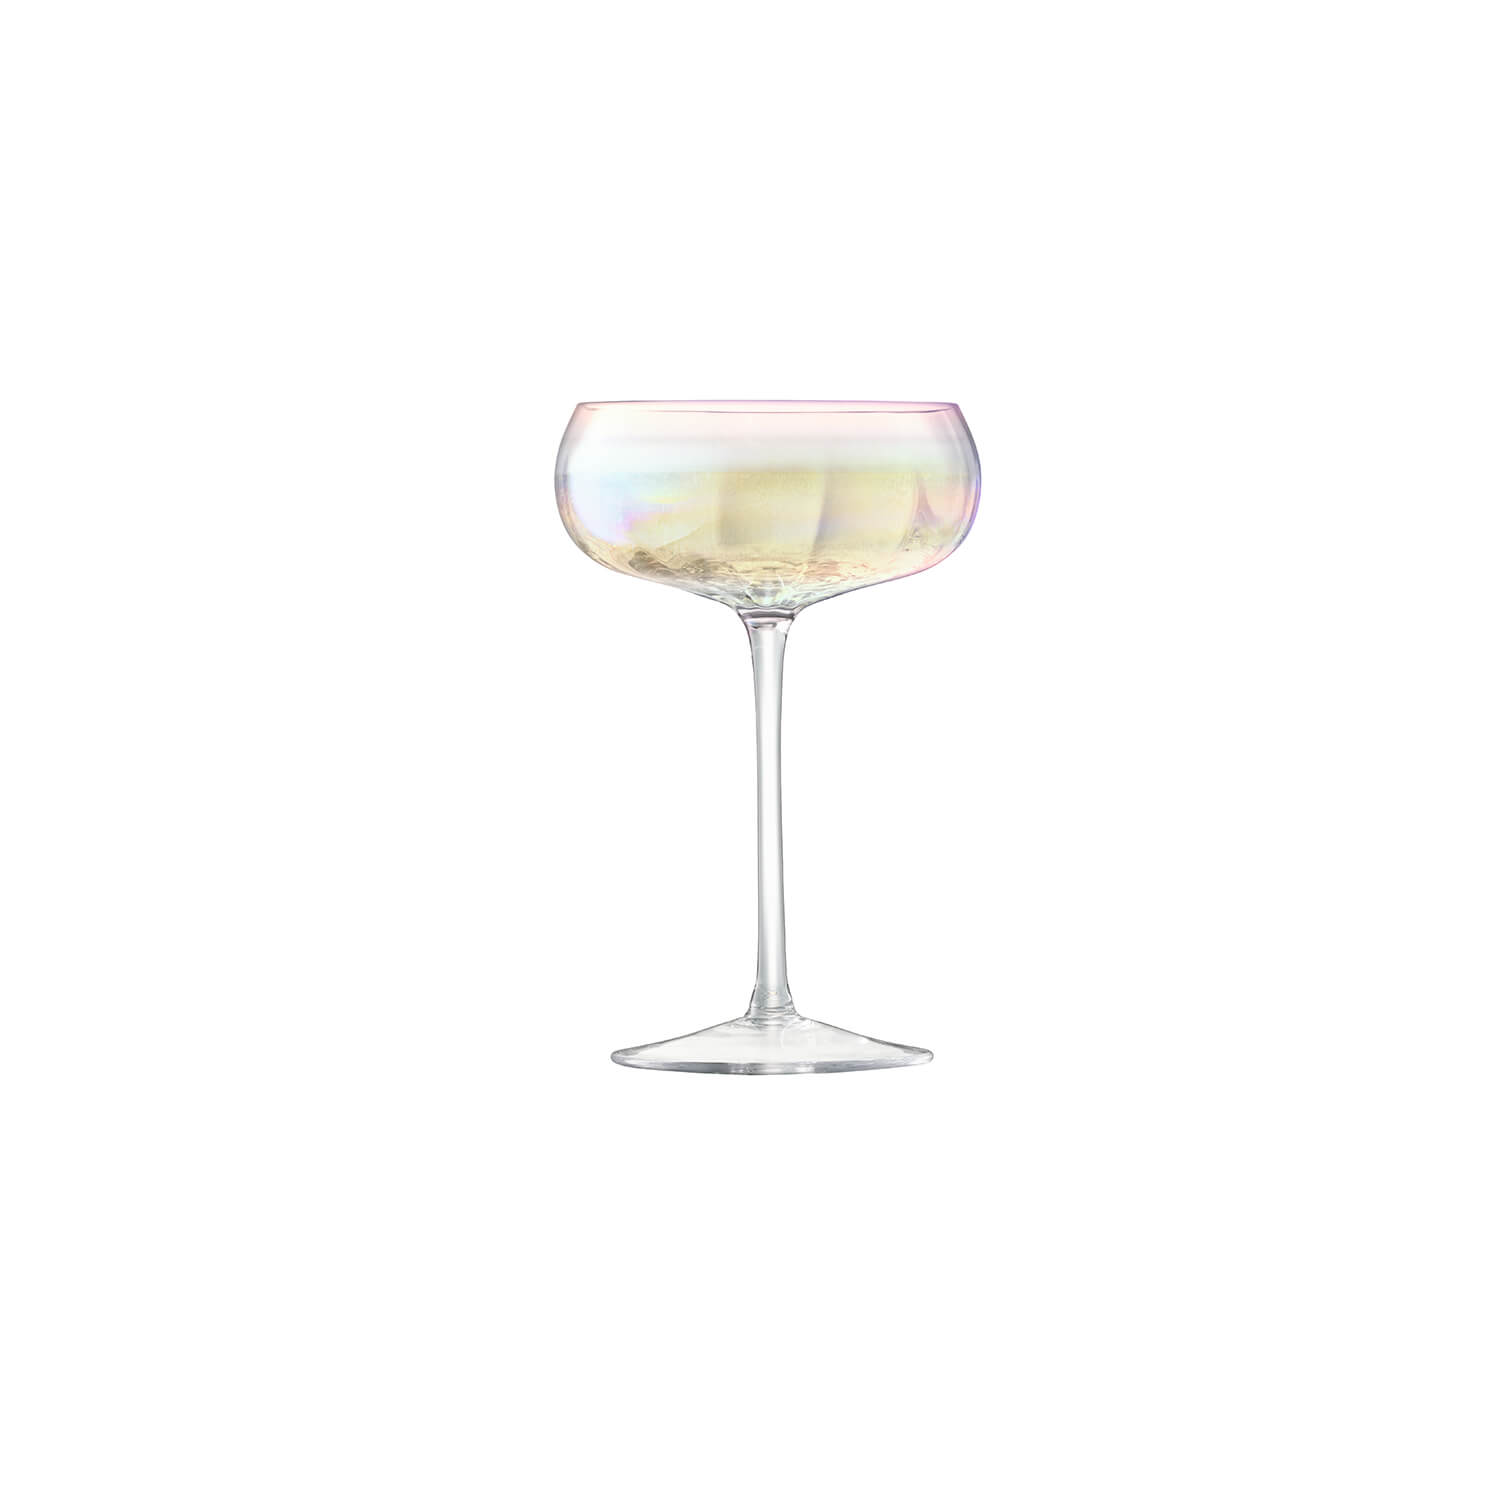 Image of LSA Pearl Champagne Saucer, Set of 4